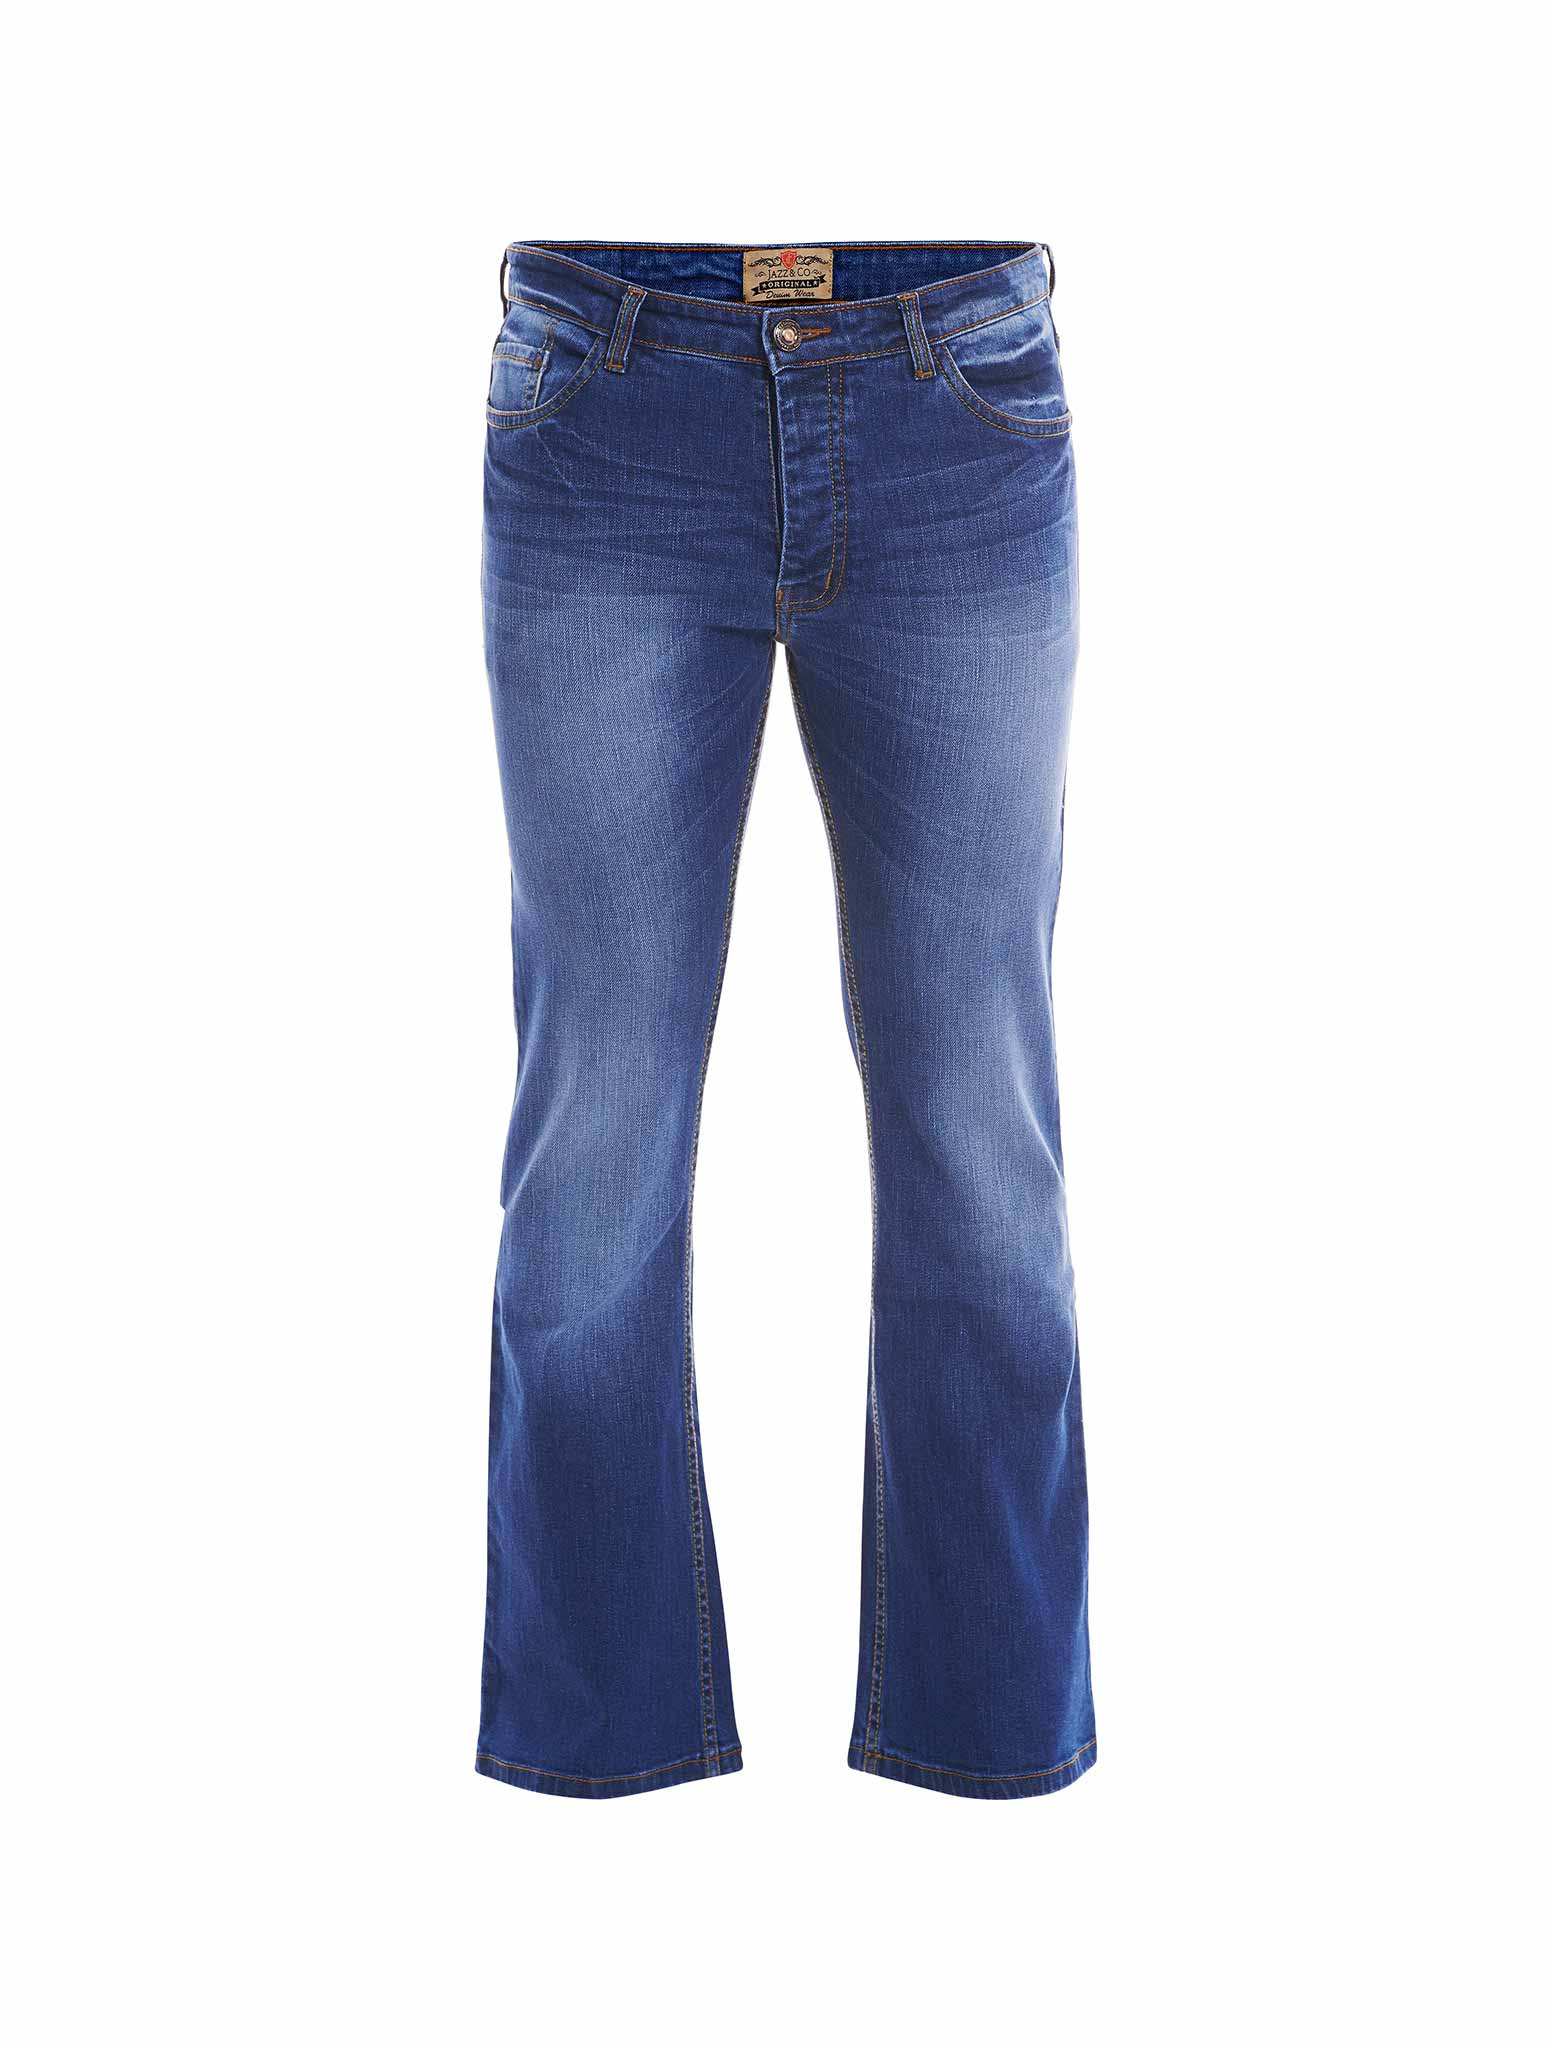 Jazz & Co Men Standard Size indigo mid-rise jeans